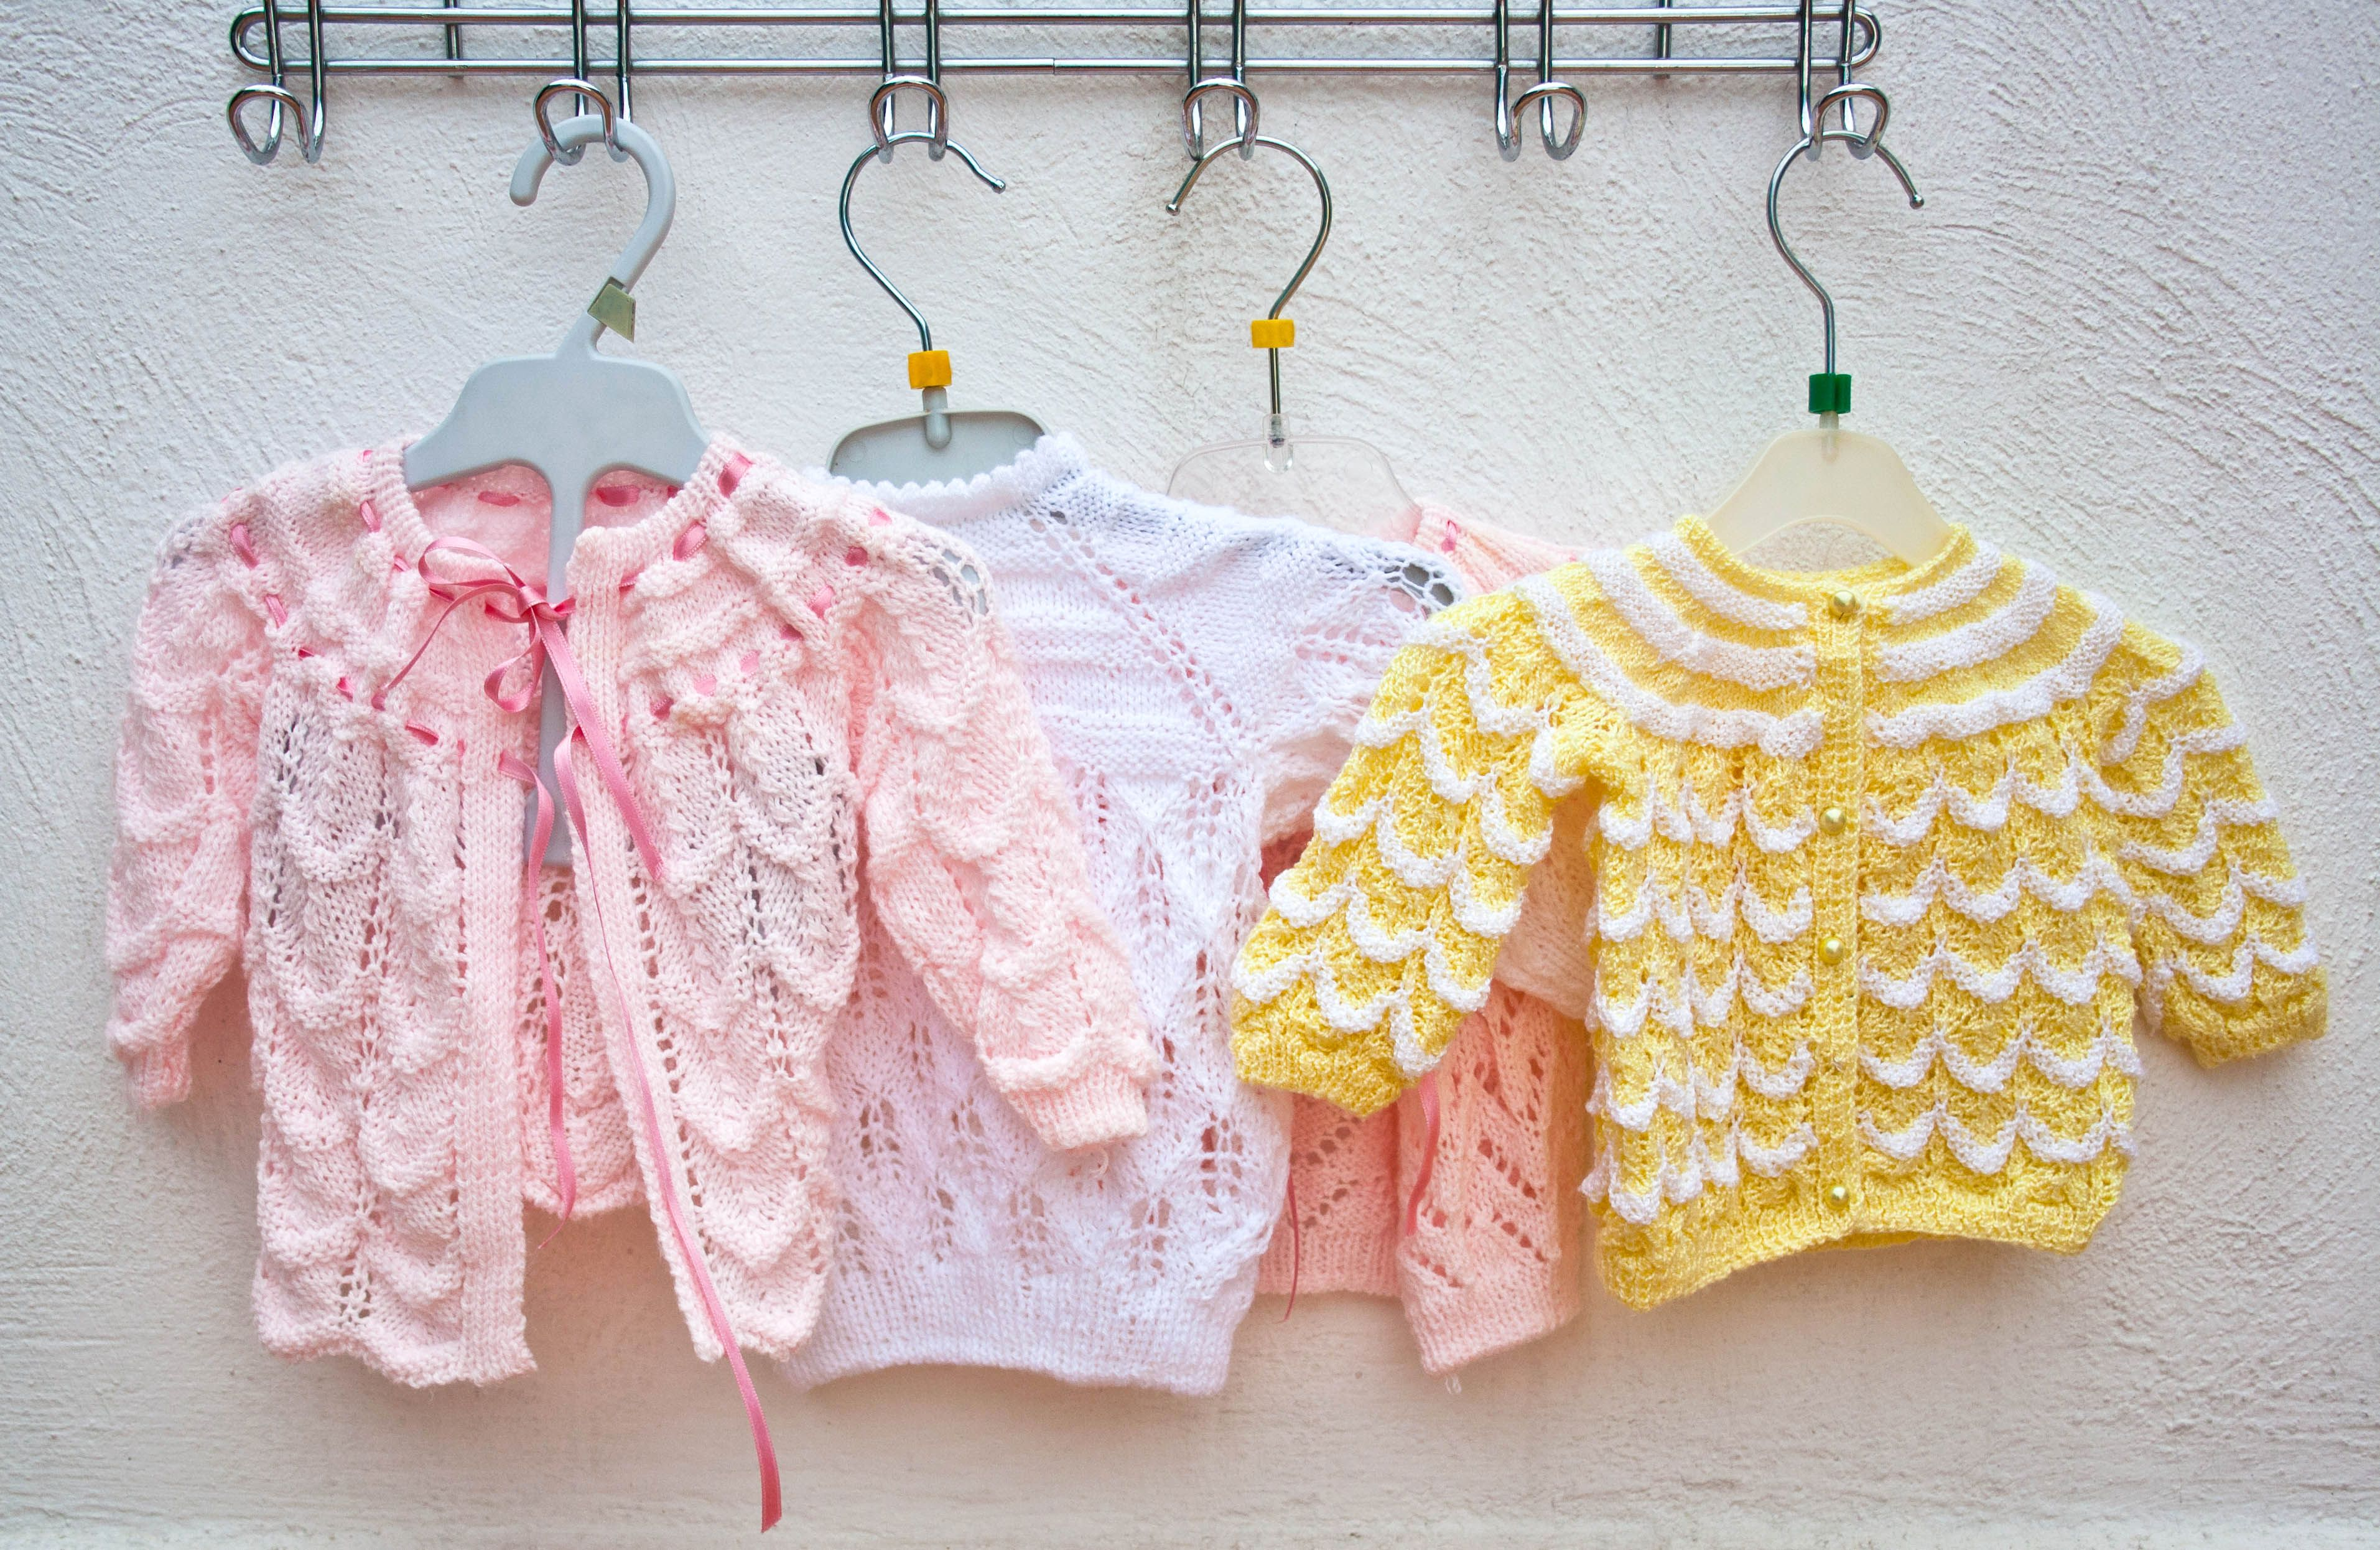 15 adorable baby hat crochet patterns 15 free baby sweater crochet patterns bankloansurffo Choice Image